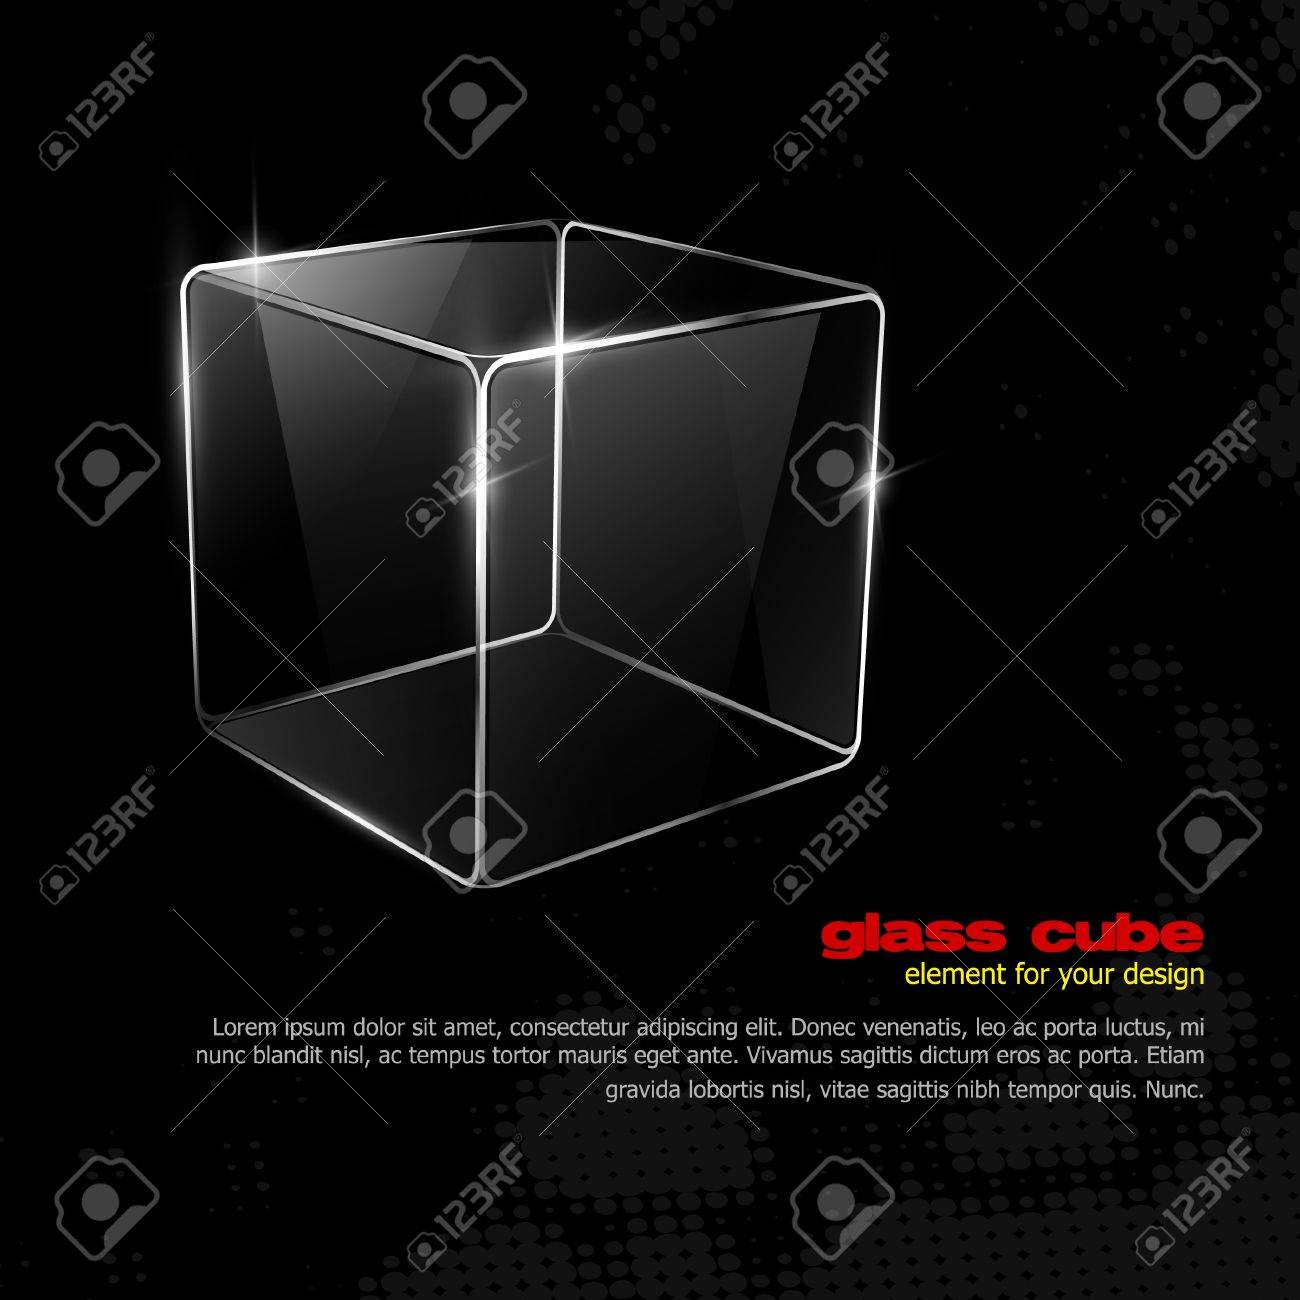 Glass cube. Element for your design. Eps10 Stock Vector - 10120984